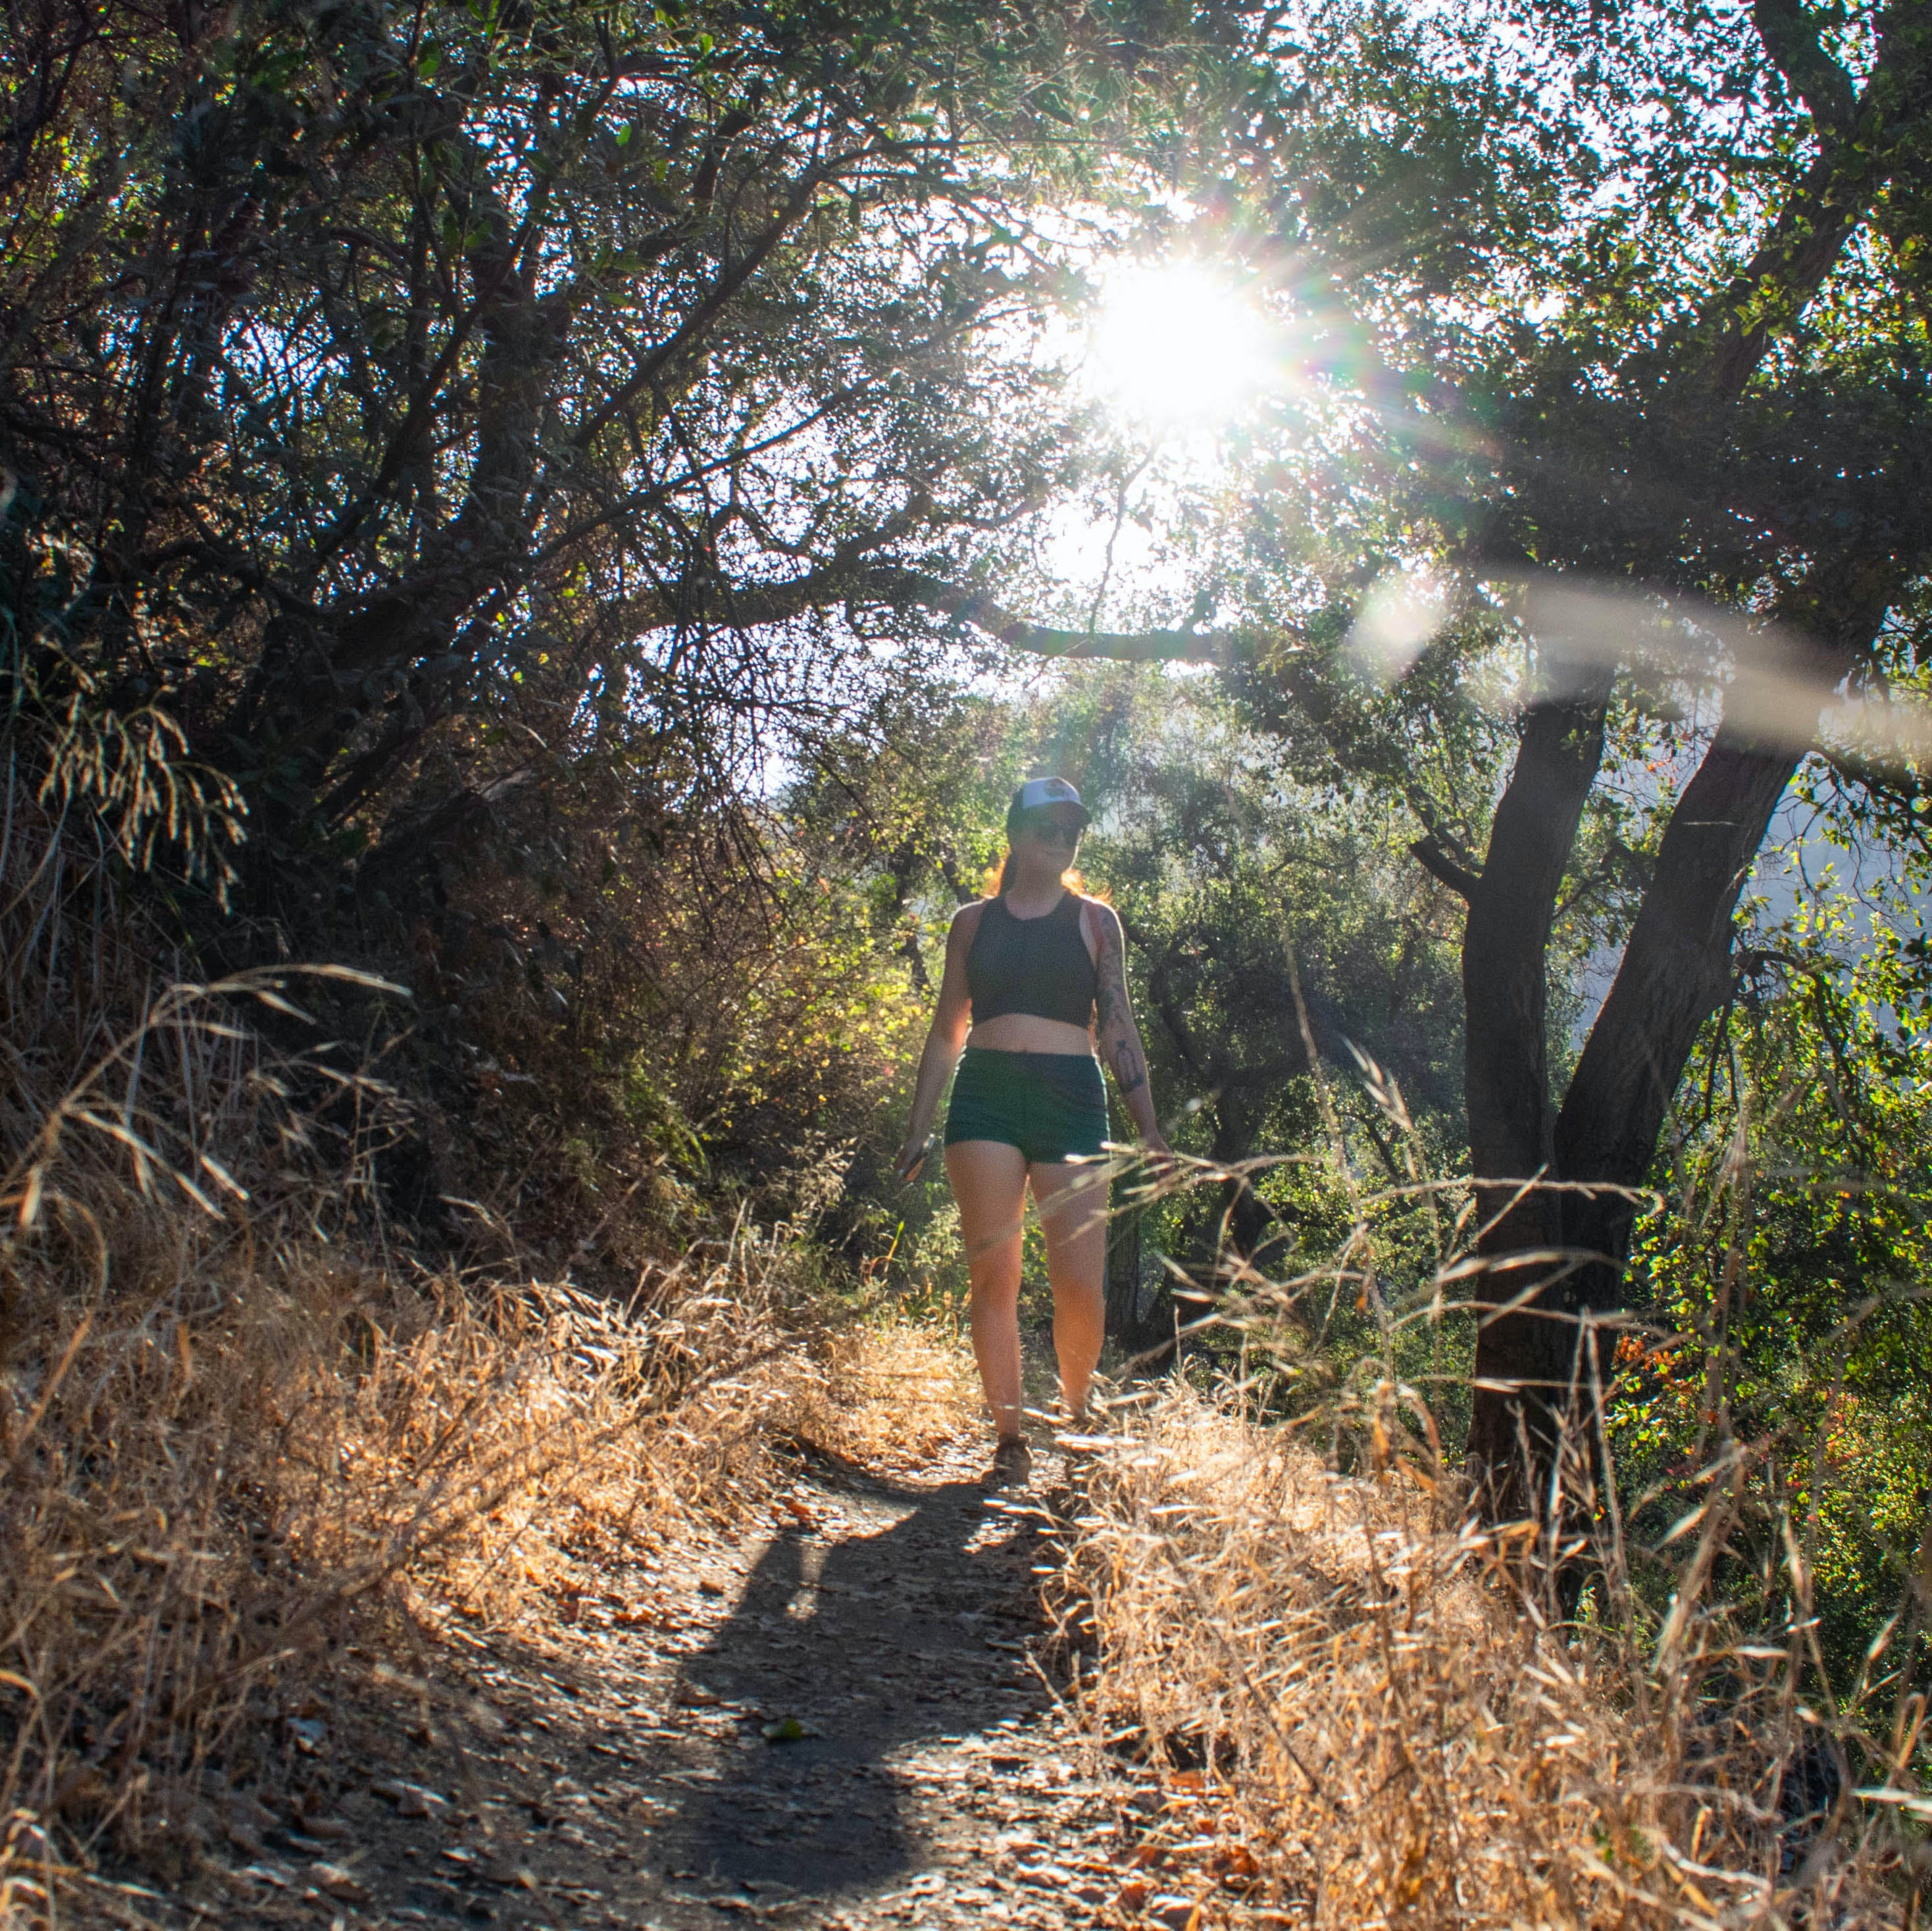 Woman hiking a forested section and sun beaming through on the Keiser Trail at Big Dalton Canyon Wilderness Park in Los Angeles County